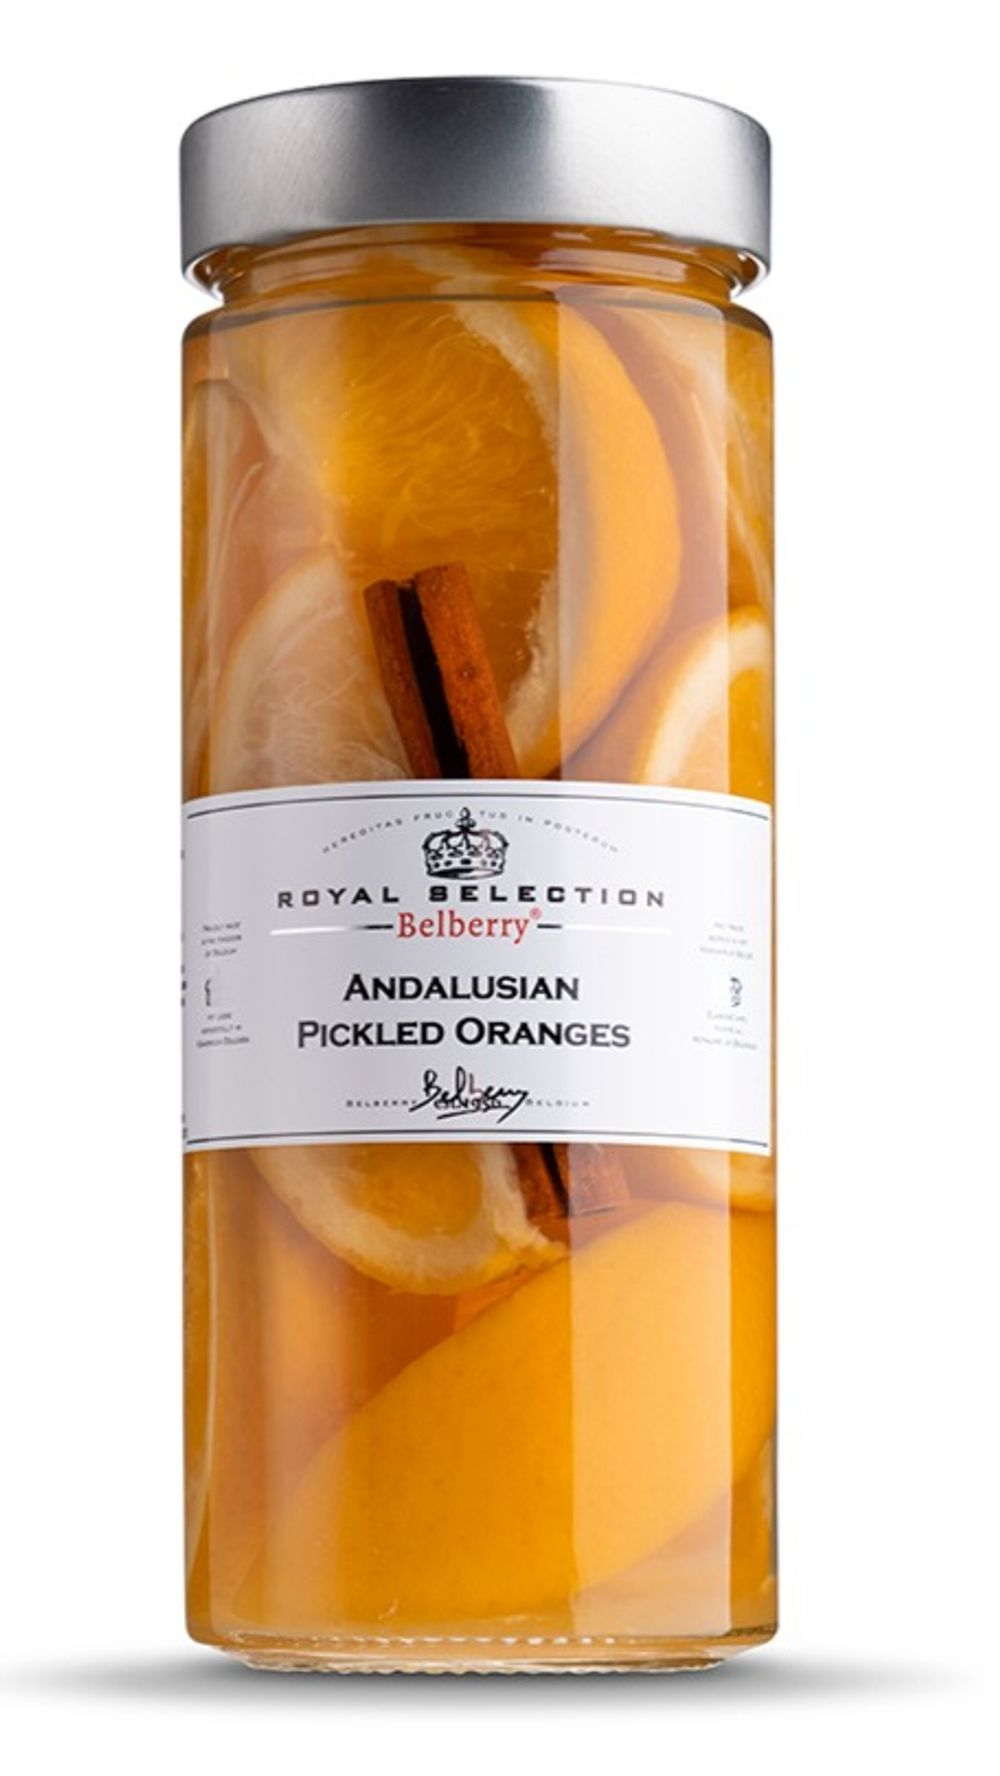 Andalusian Preserved Oranges